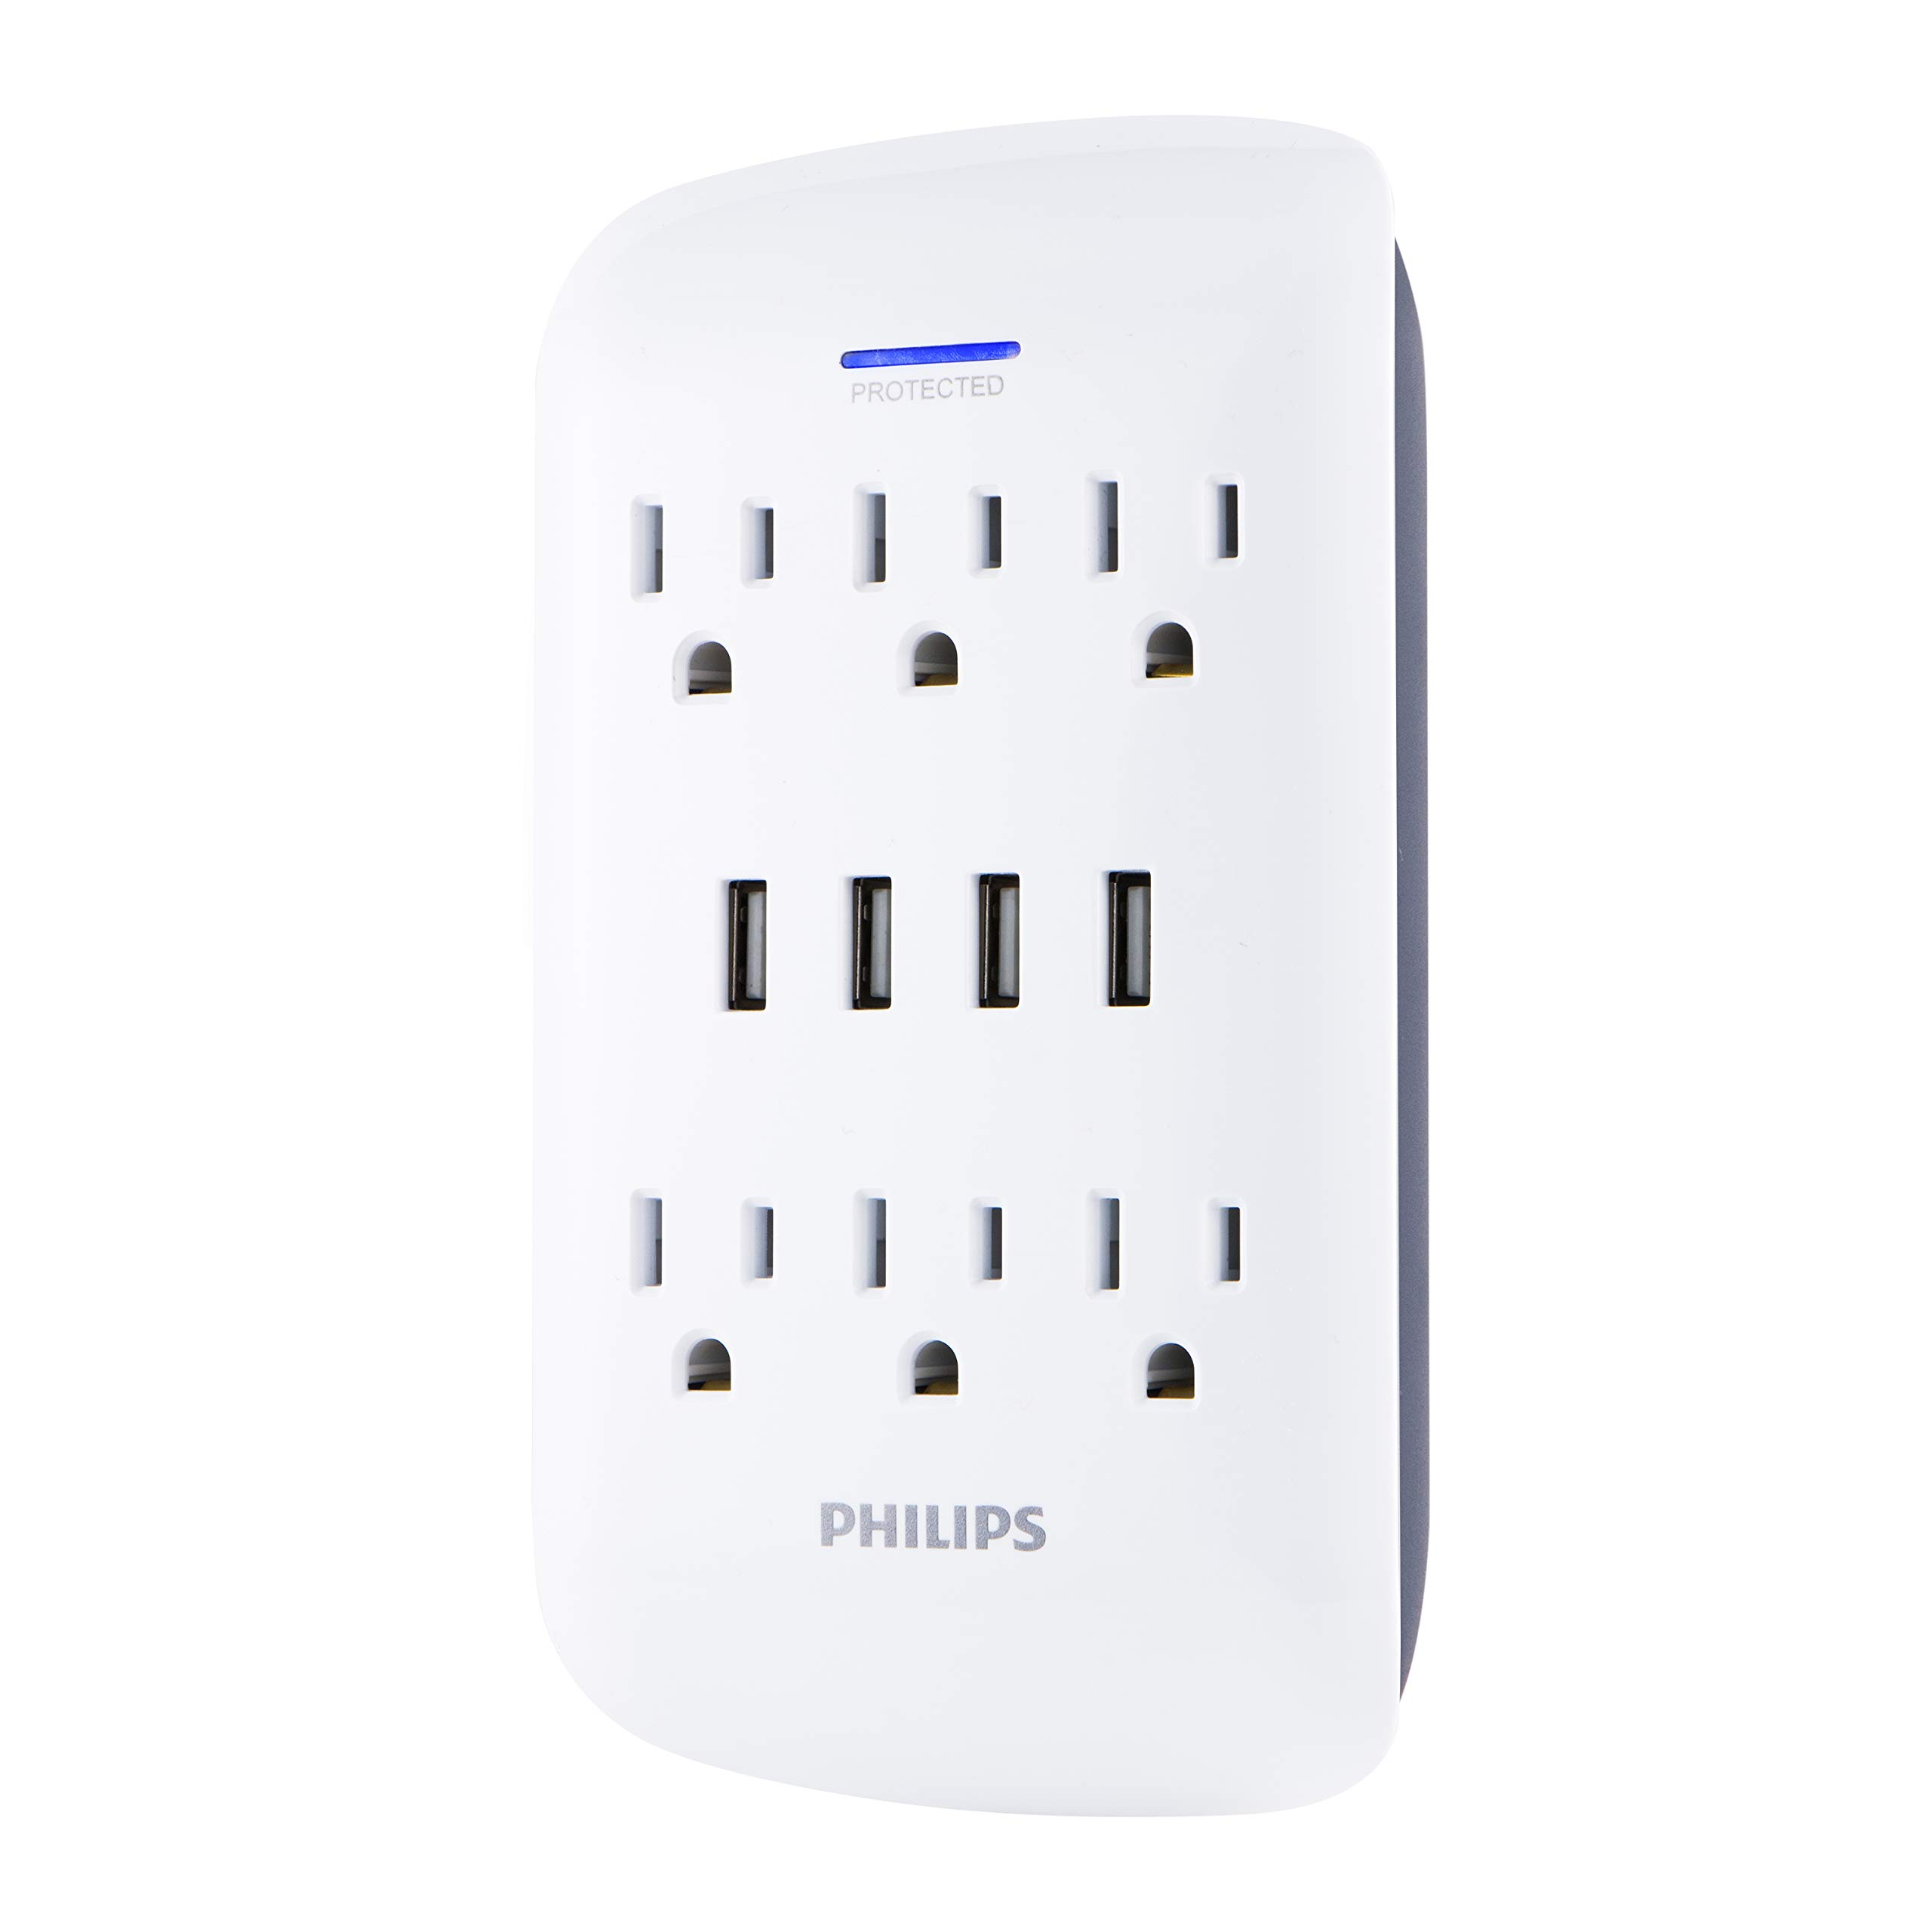 Philips USB Wall Charger, Surge Protector, 6 Grounded Outlets, 4 USB Ports, 4.2AMP, 21Watt, 900 Joules, Charging Station, White, SPP6463WG/37